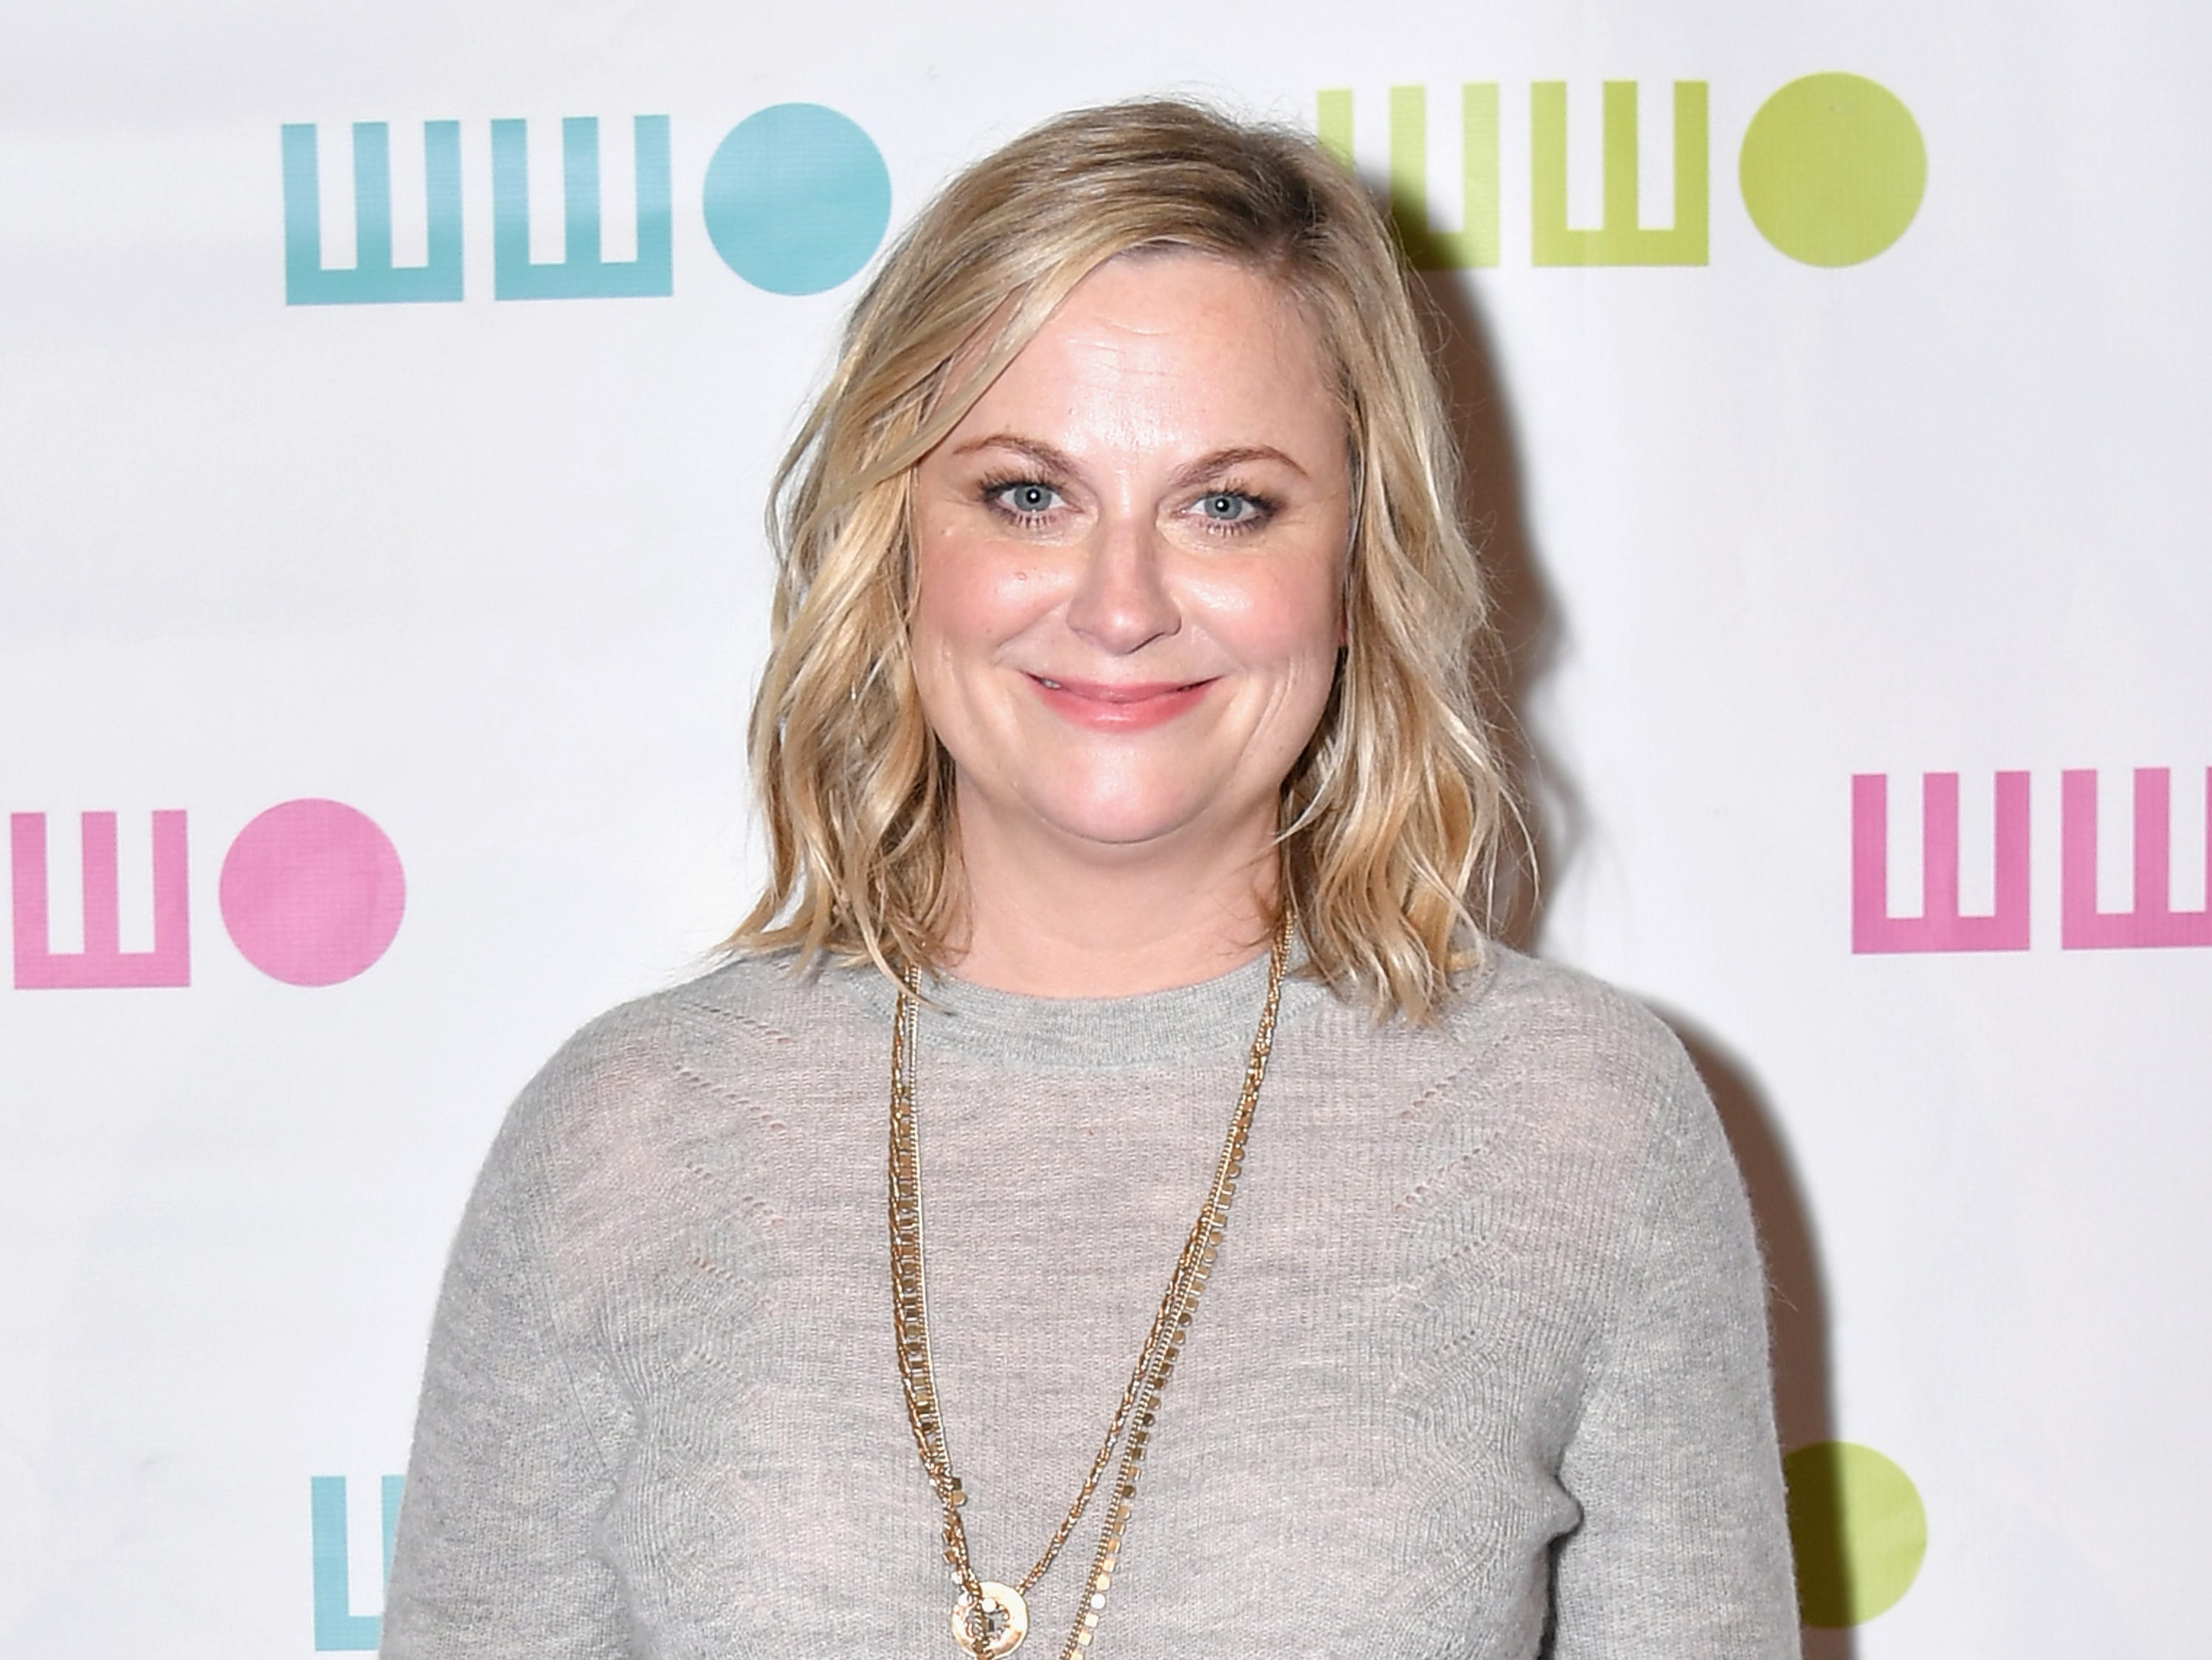 NEW YORK, NY - NOVEMBER 05:  Amy Poehler attends the Worldwide Orphans 14th Annual Gala at Cipriani Wall Street on November 5, 2018 in New York City.  (Photo by Michael Loccisano/Getty Images for WWO) ORG XMIT: 775237864 ORIG FILE ID: 1057816254